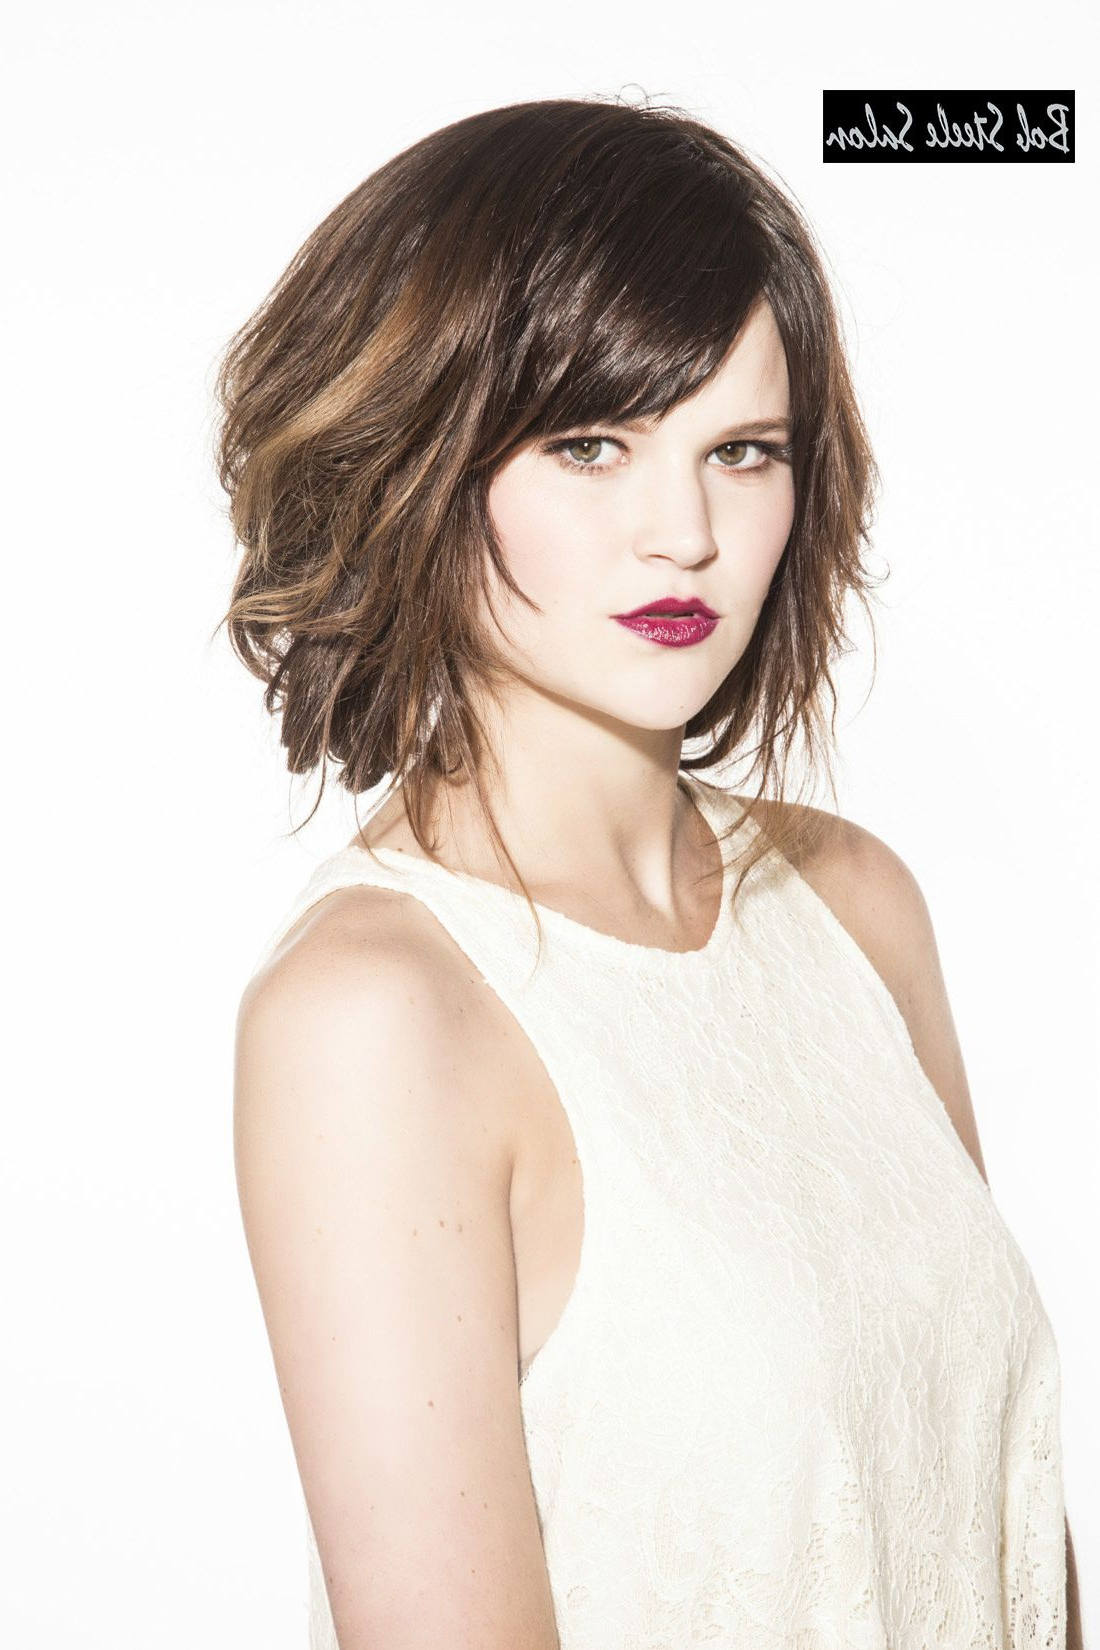 34 Greatest Short Haircuts And Hairstyles For Thick Hair For 2018 Regarding Edgy Short Haircuts For Thick Hair (View 17 of 25)